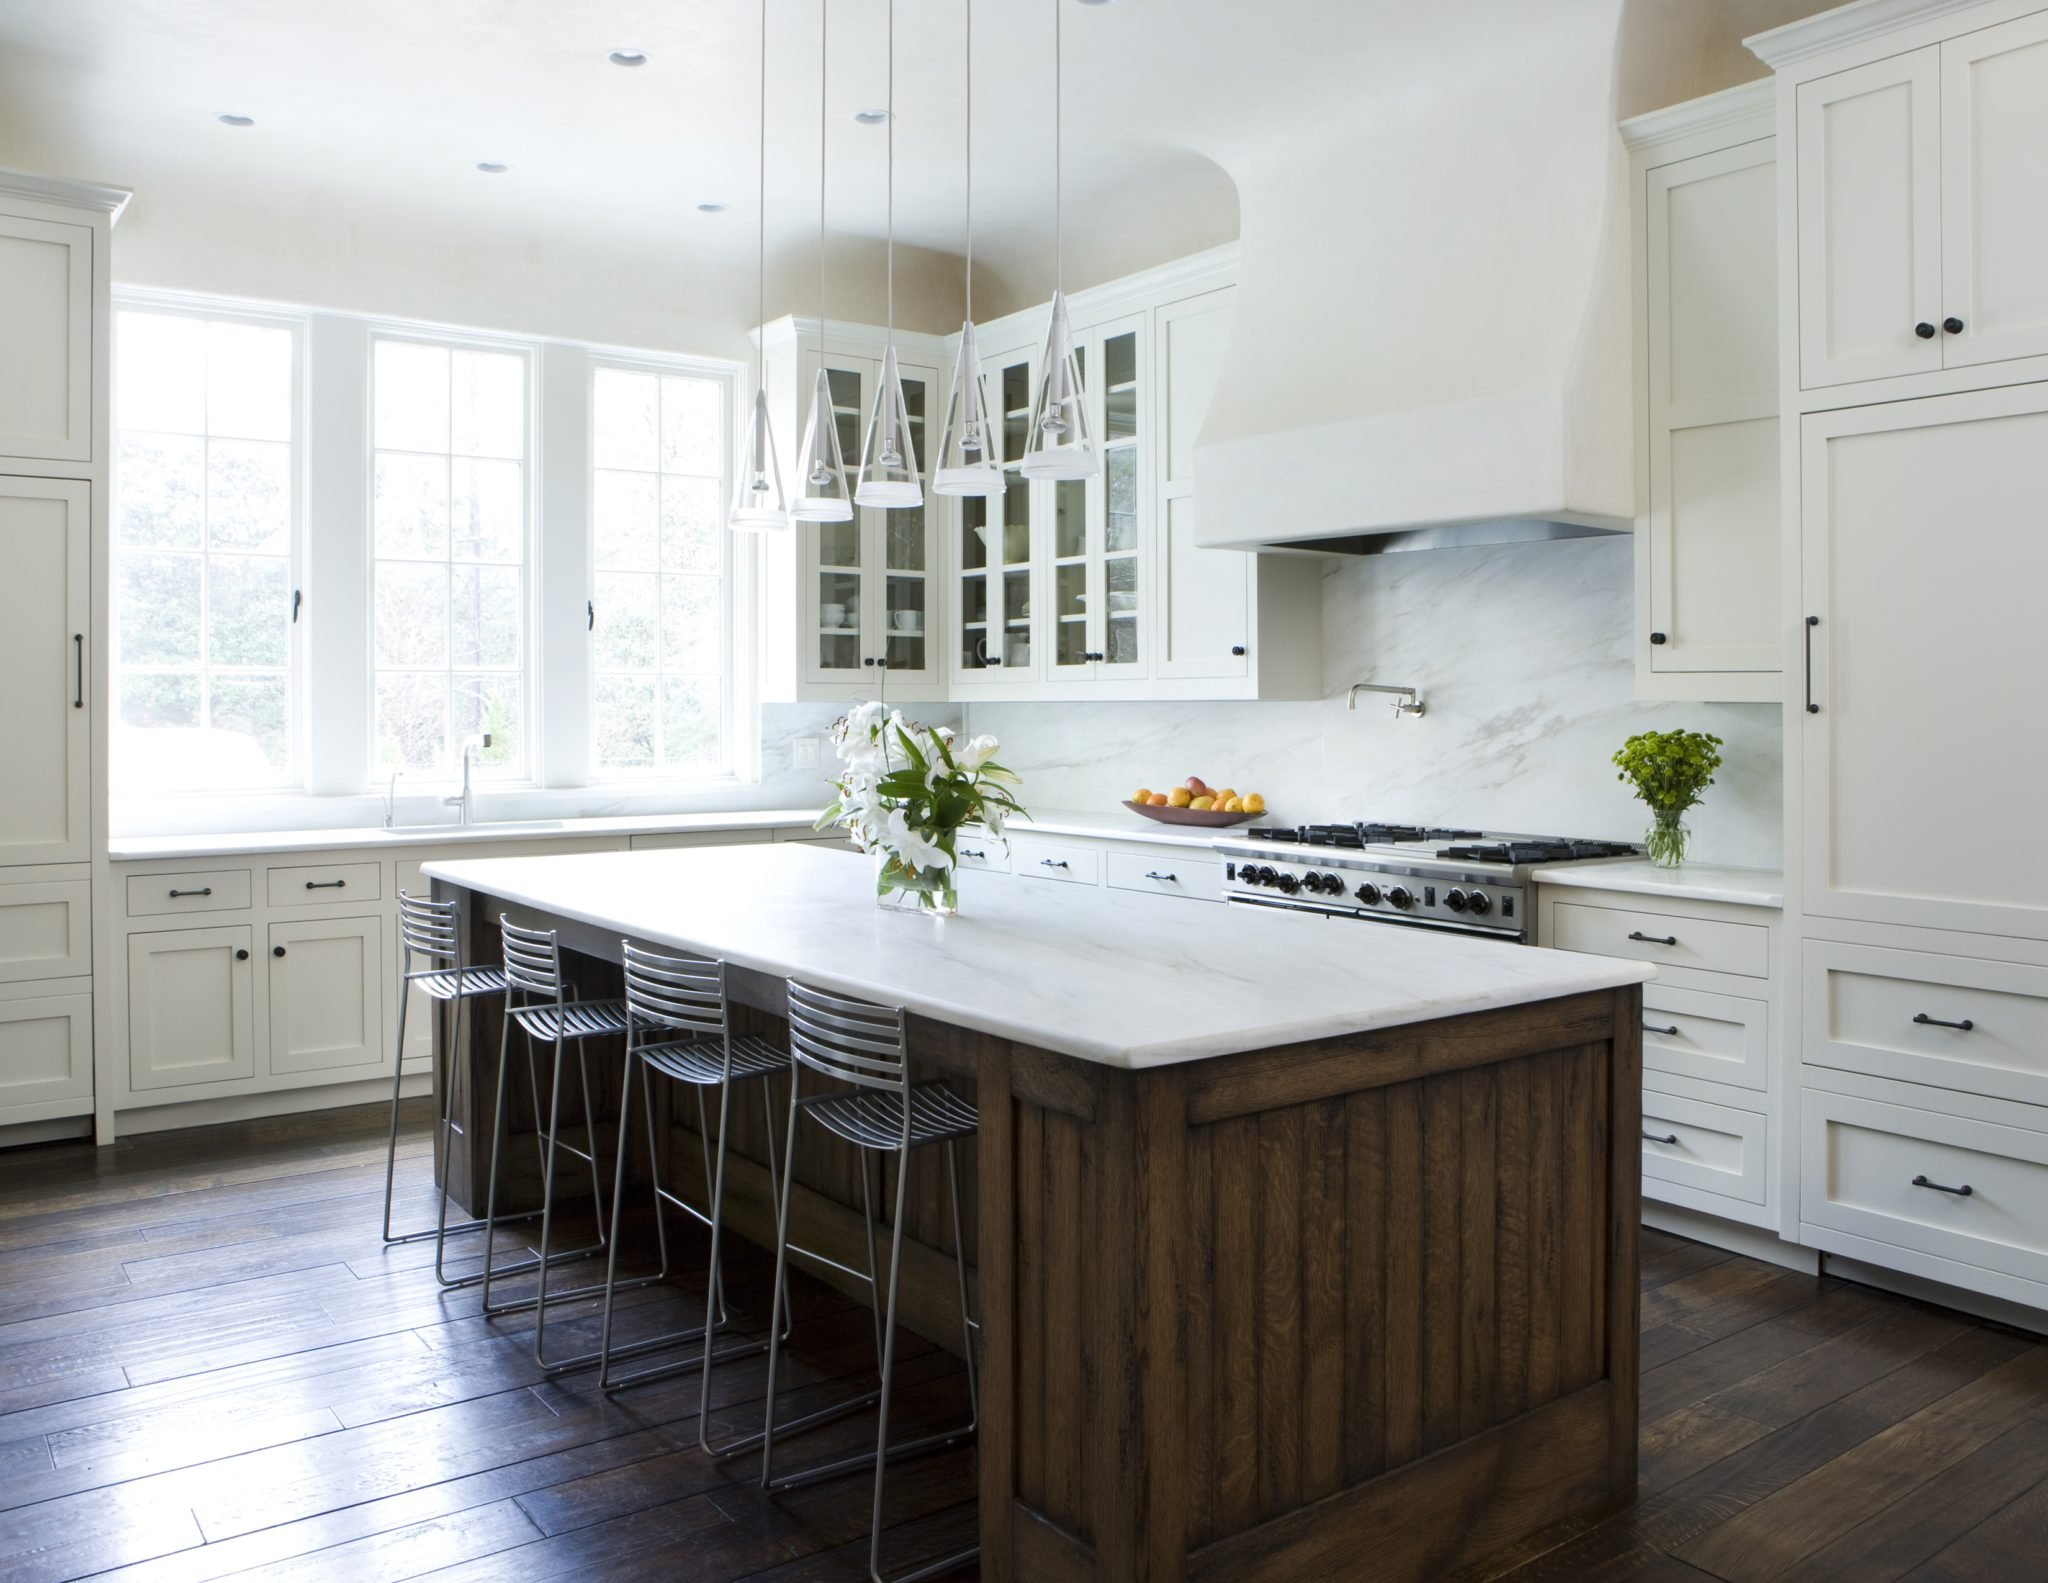 Large kitchen with wood floors and large island by James Michael Howard